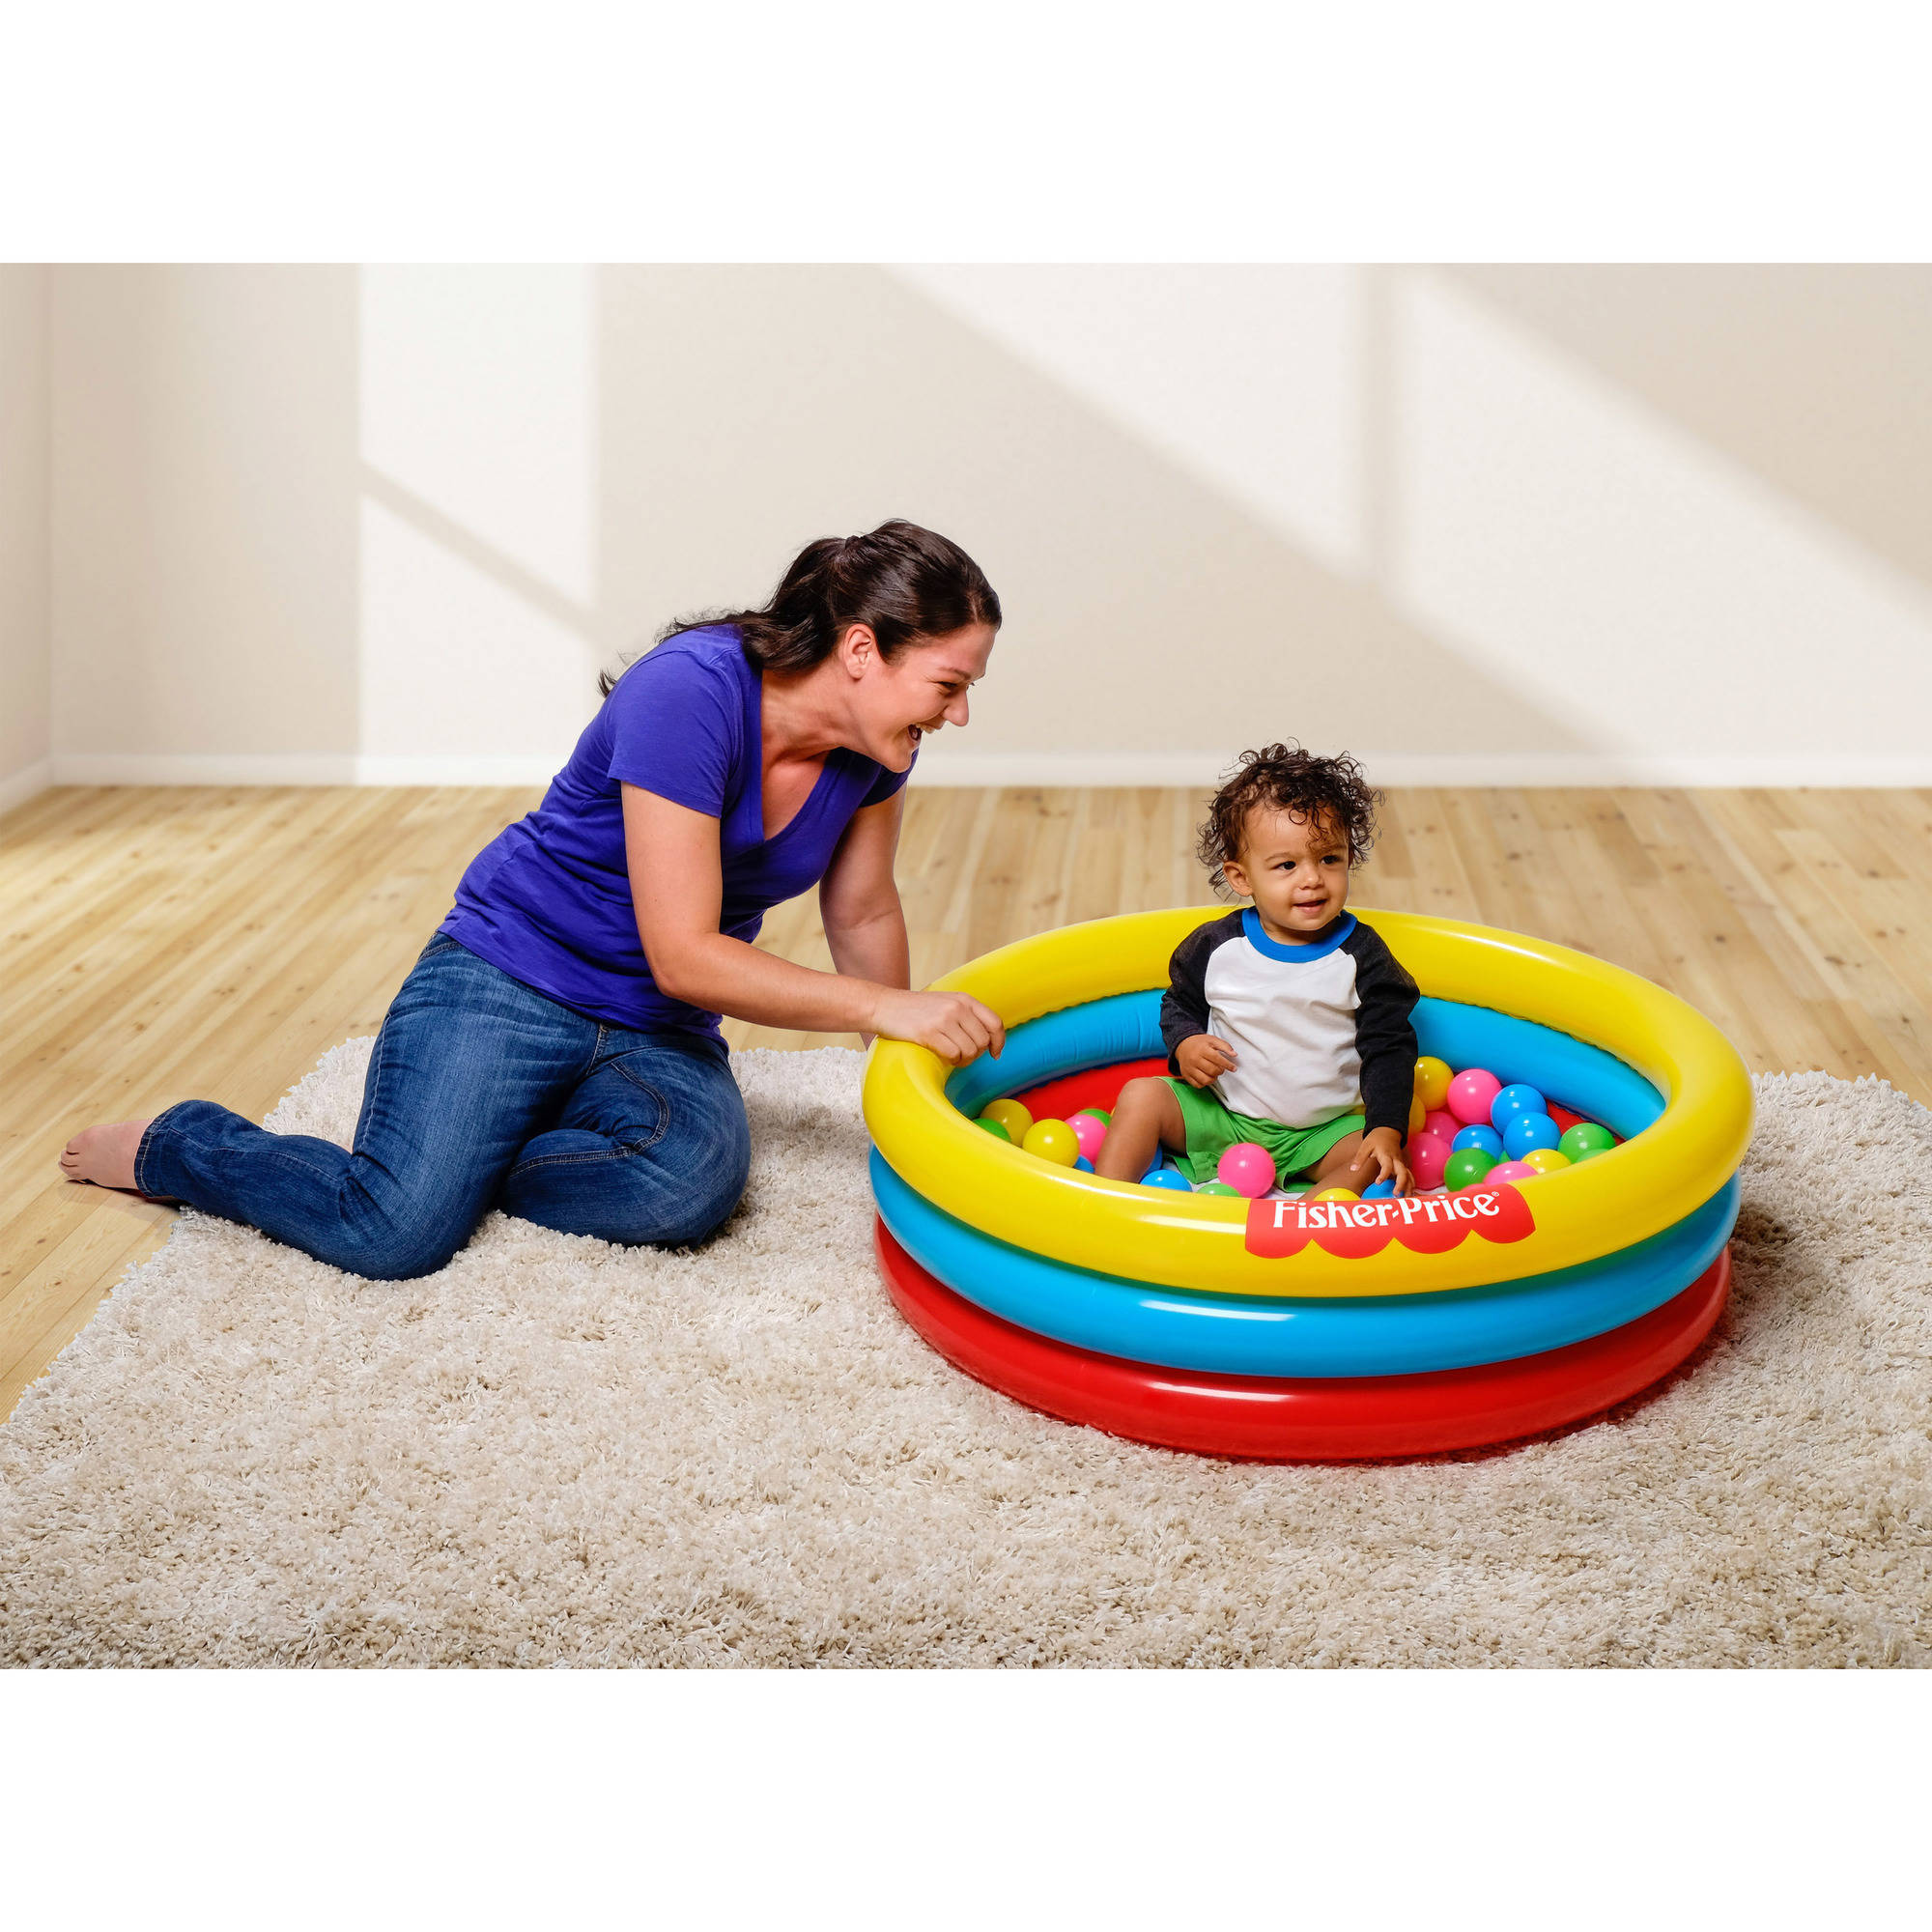 "Fisher Price 36"" x Н10"" 3-Ring Ball Pit Play Pool by BESTWAY HONG KONG INTERNATIONAL LIMITED"